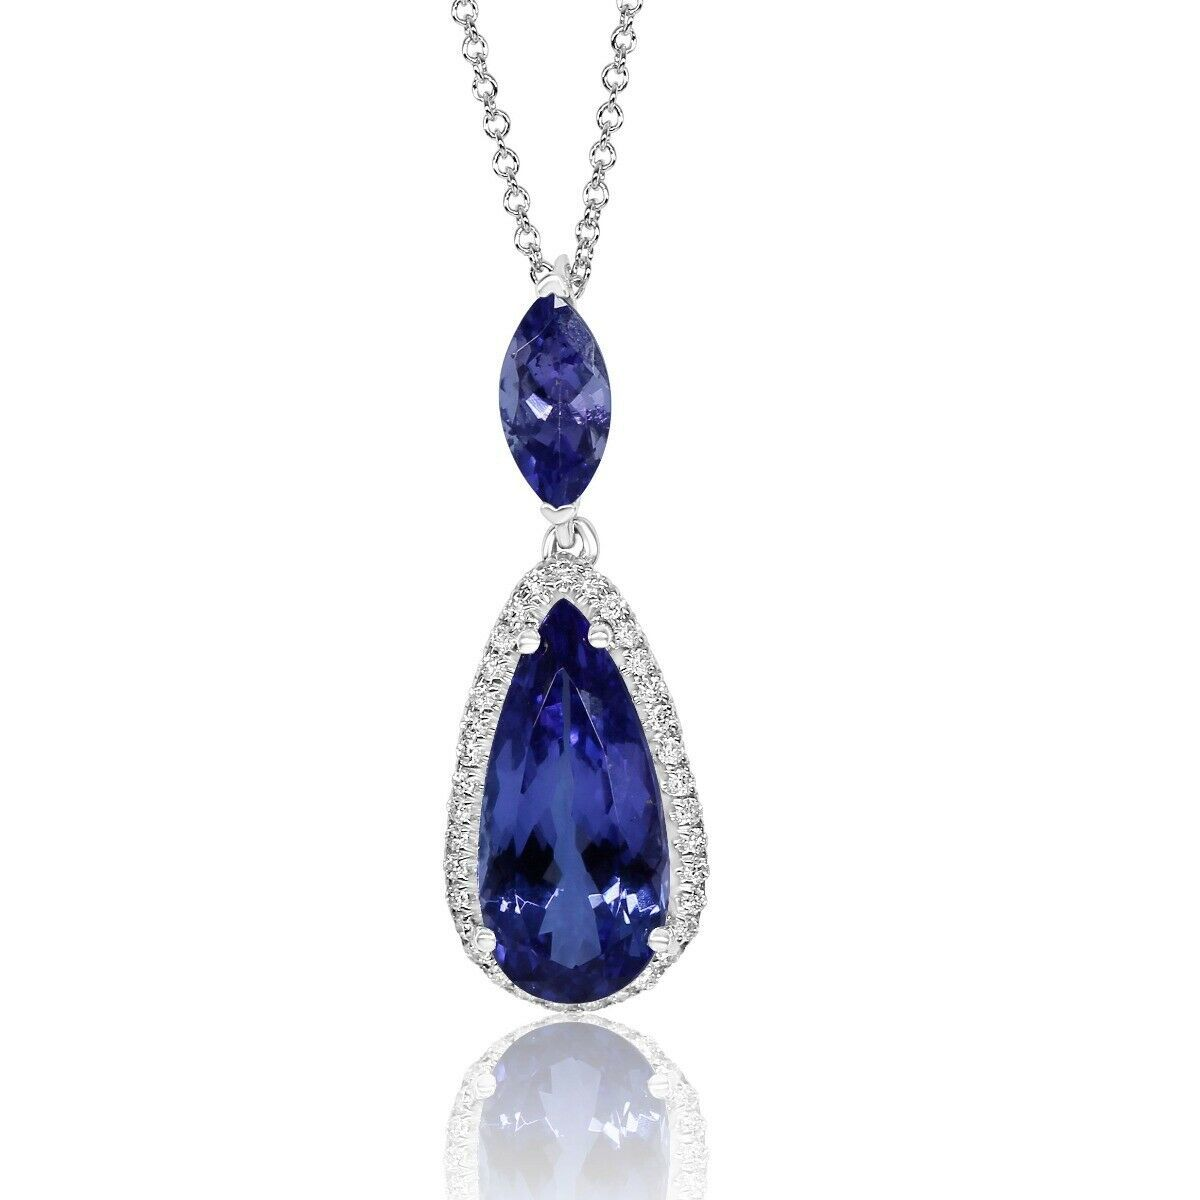 Primary image for 4.52 Ct Teardrop Natural Tanzanite Diamond Halo Pendant Necklace 14k White Gold